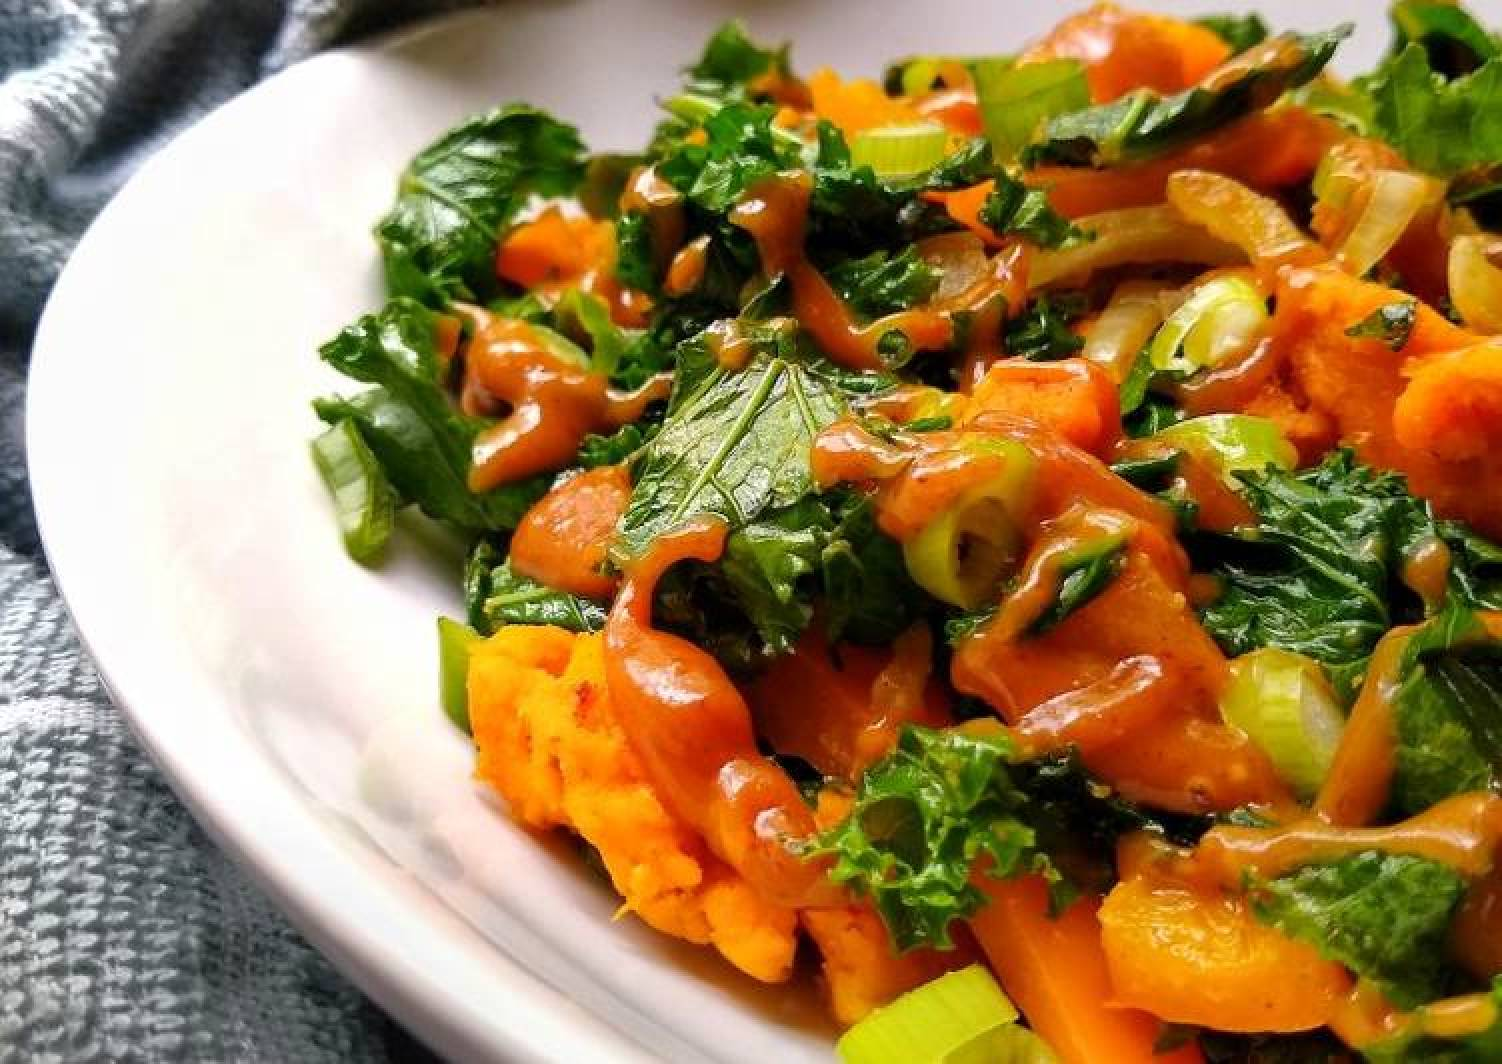 Sweet Potato & Kale Stir Fry With A Peanut Sesame Dressing